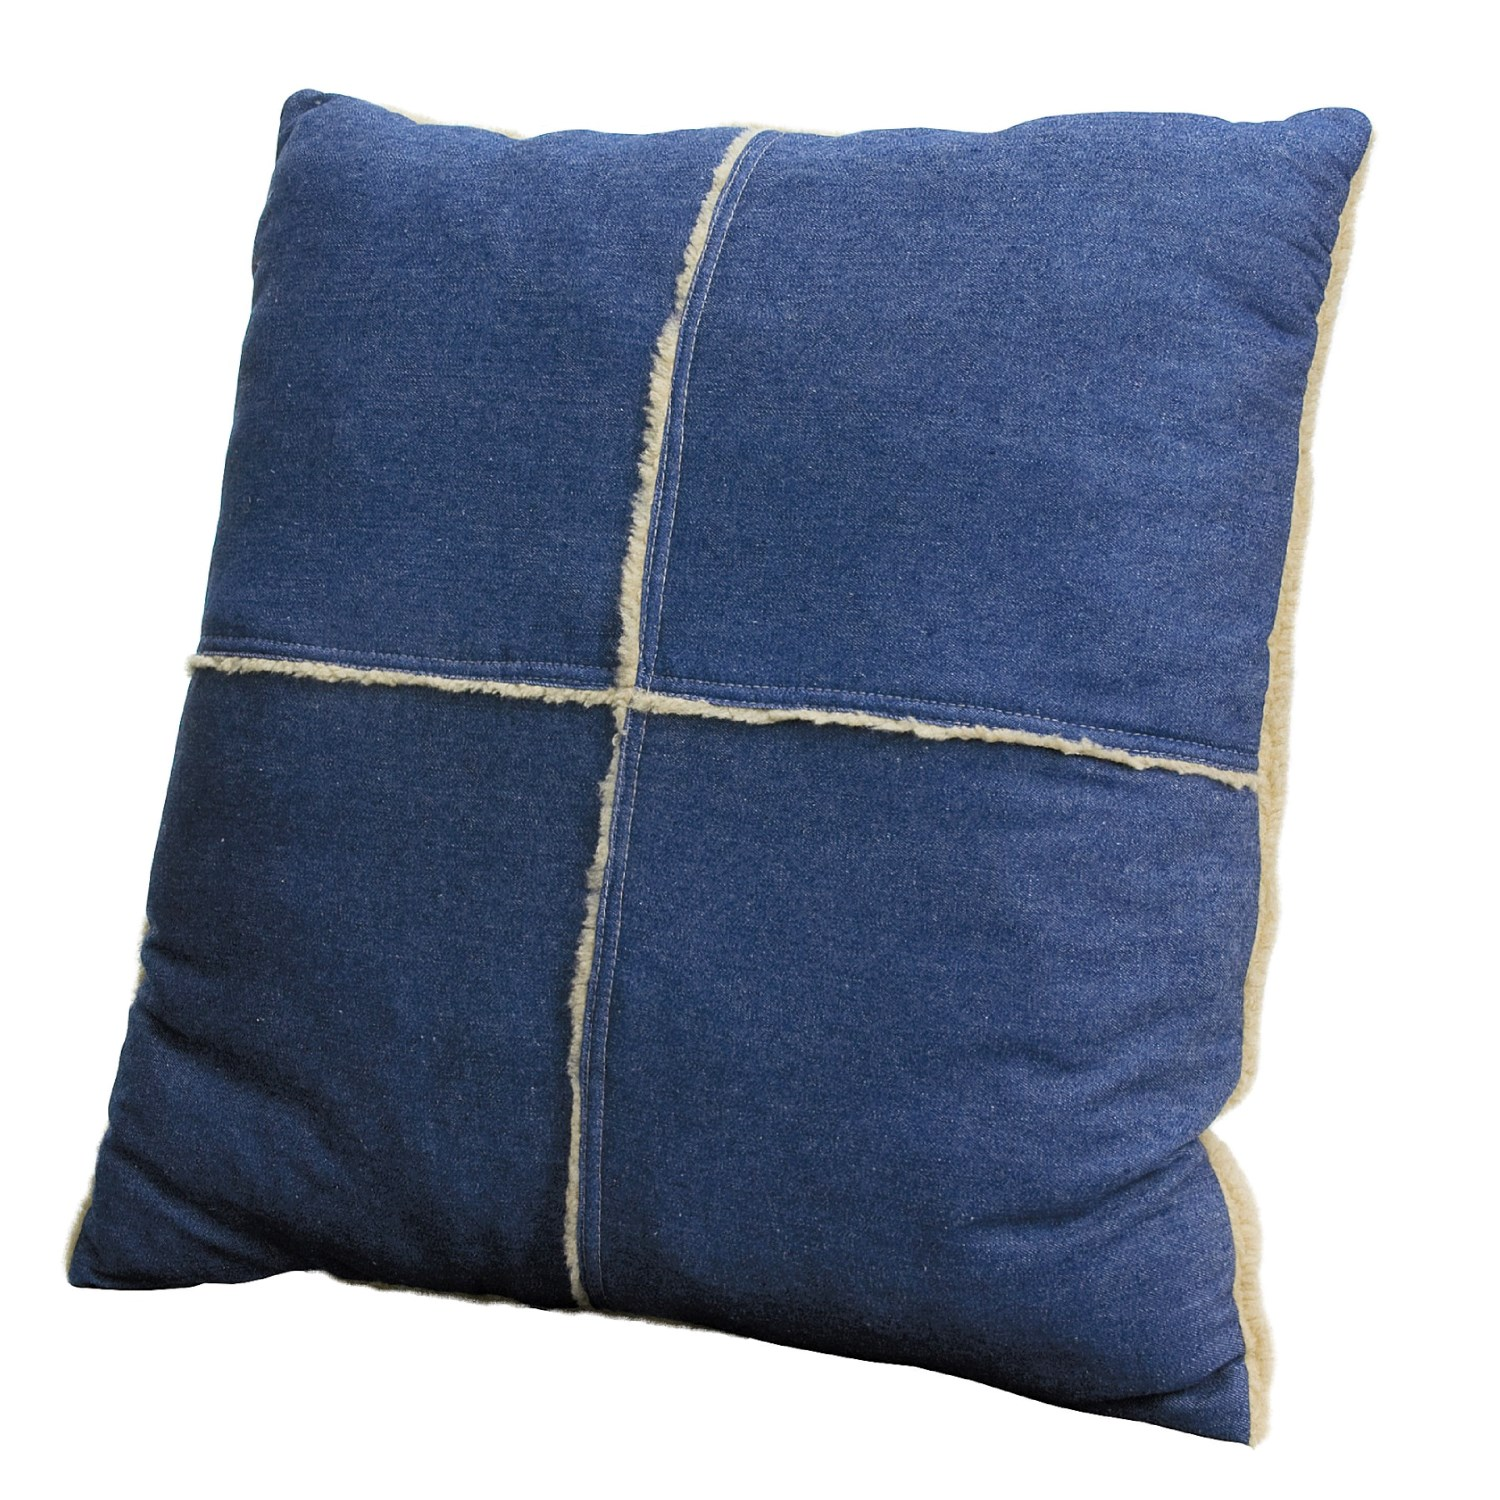 Woolrich Dog Decorative Pillow : Woolrich Ty Ridge Decorative Pillow - Reversible 87476